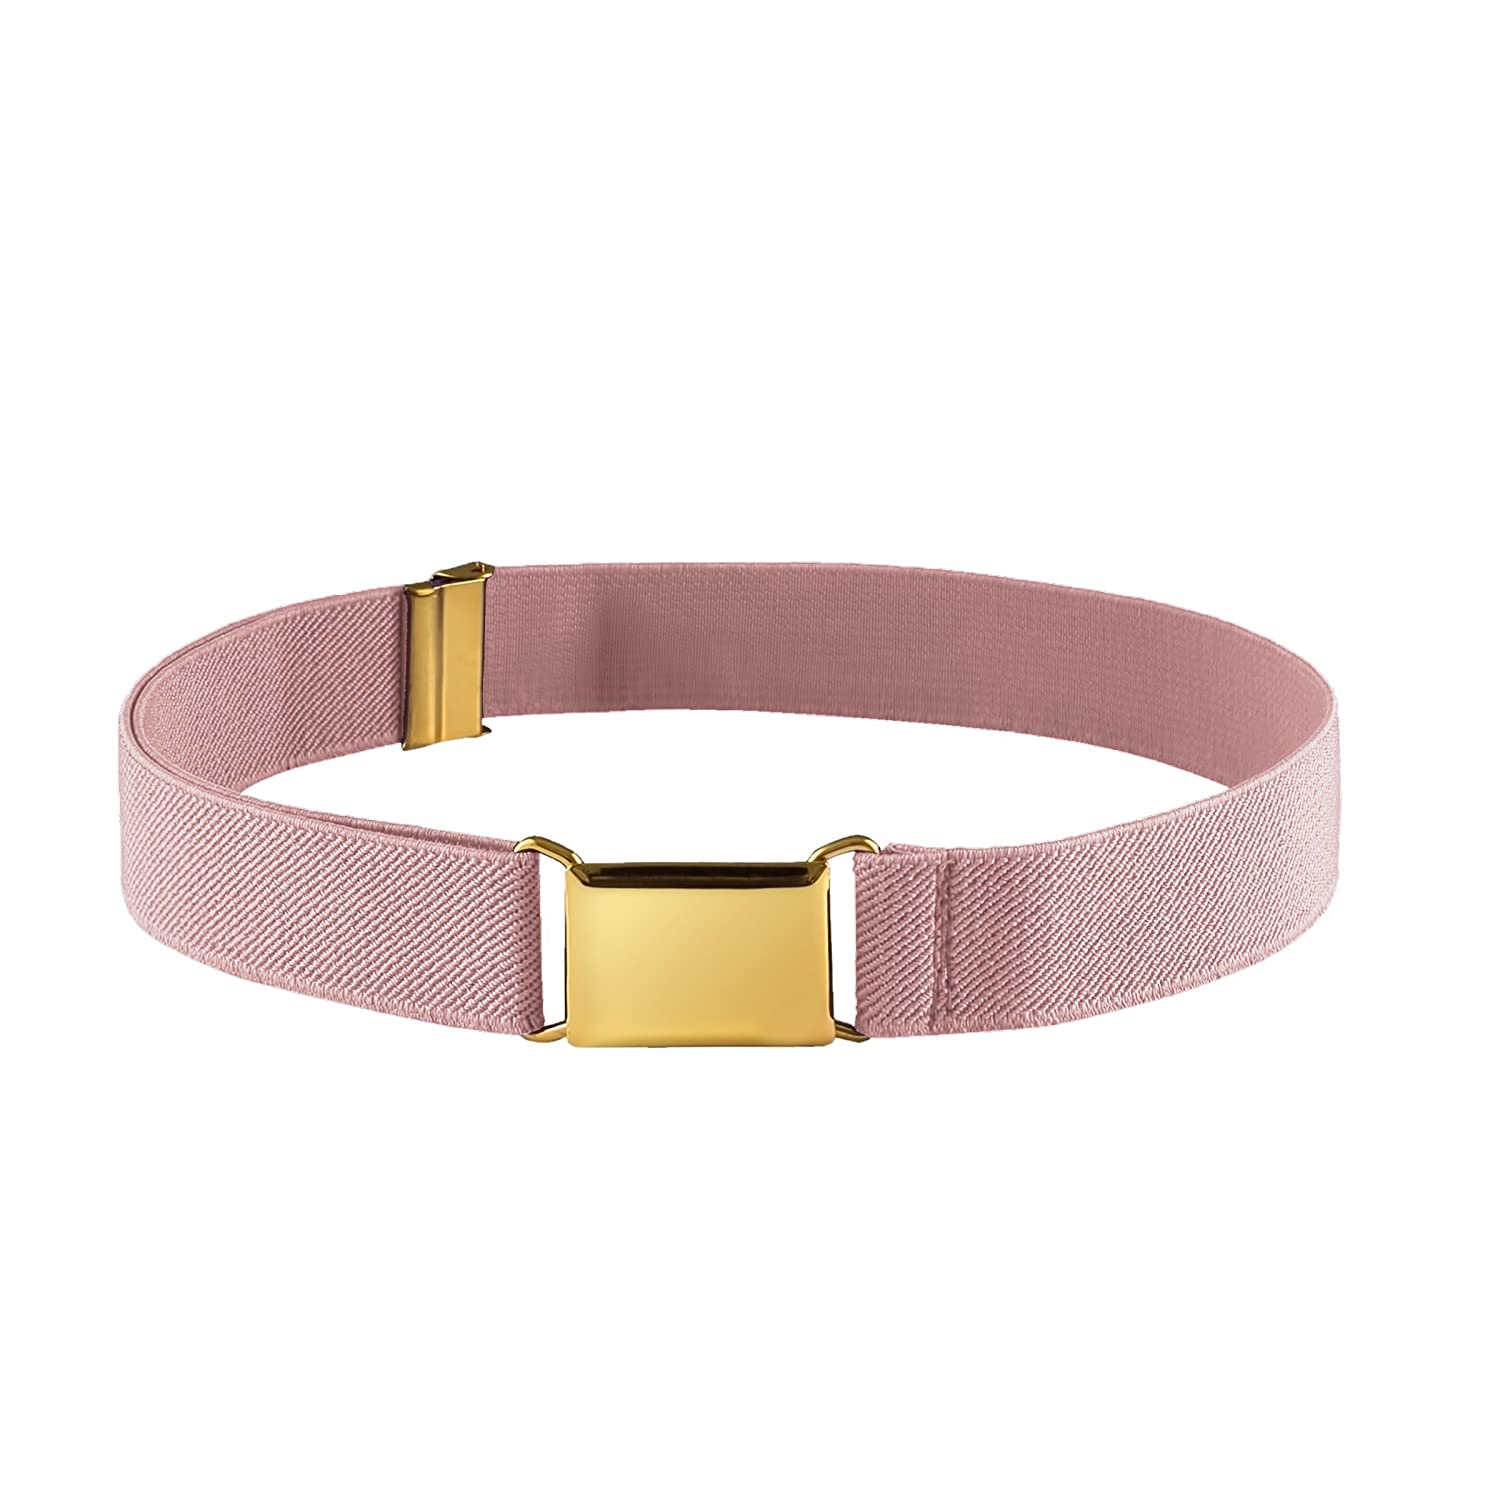 FIT RITE Kids Elastic Adjustable Stretch Belt With Gold Square Buckle (LT. Pink) 1991